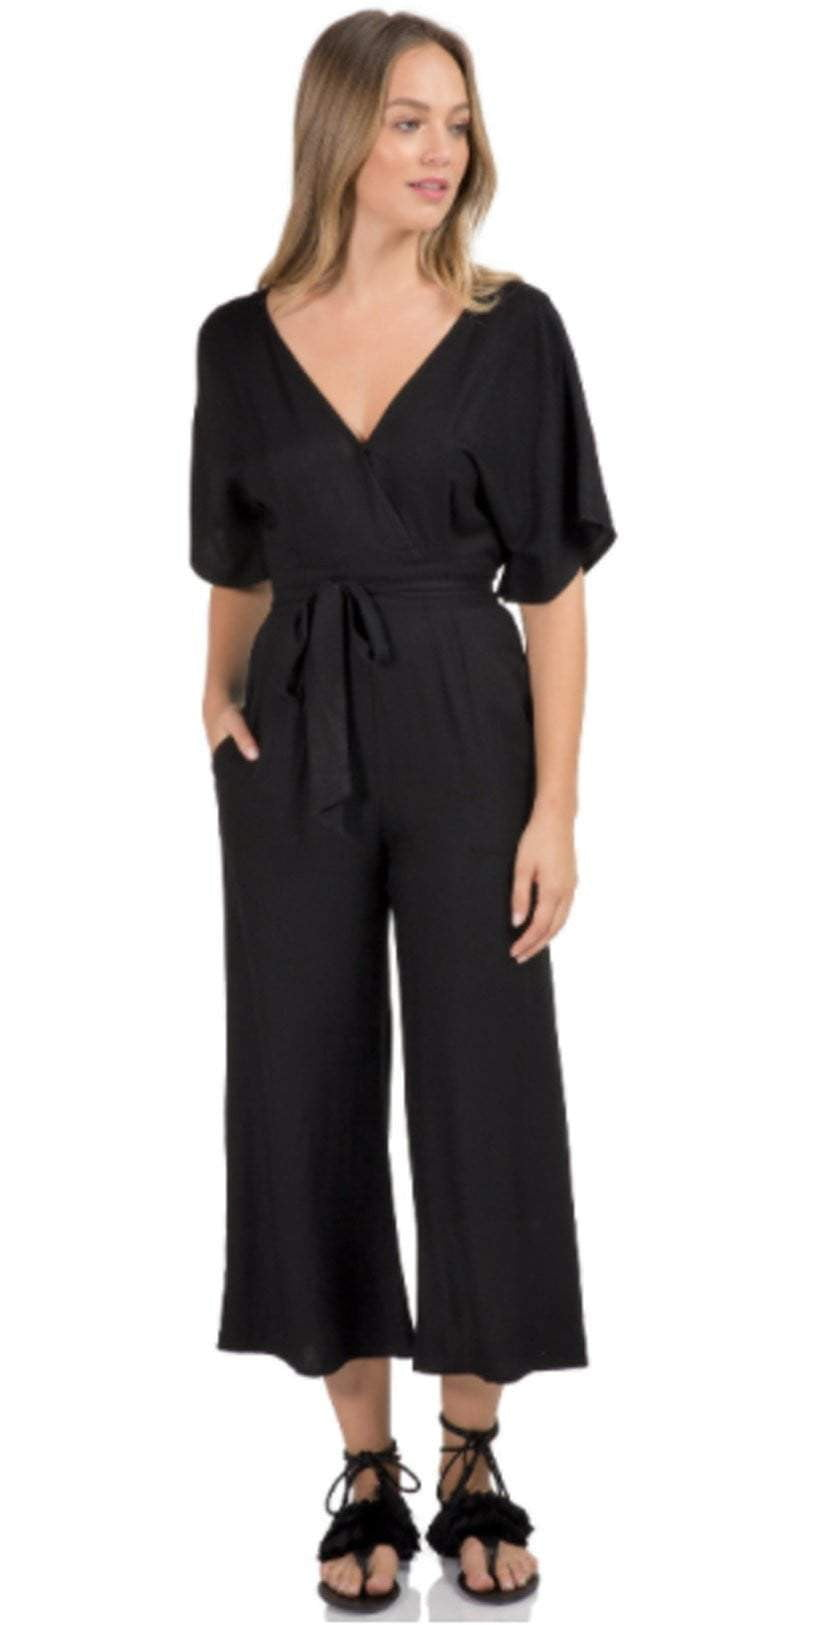 Elan Romper Ruffle Top Jumpsuit in Black SC7142-BLK front view studio model